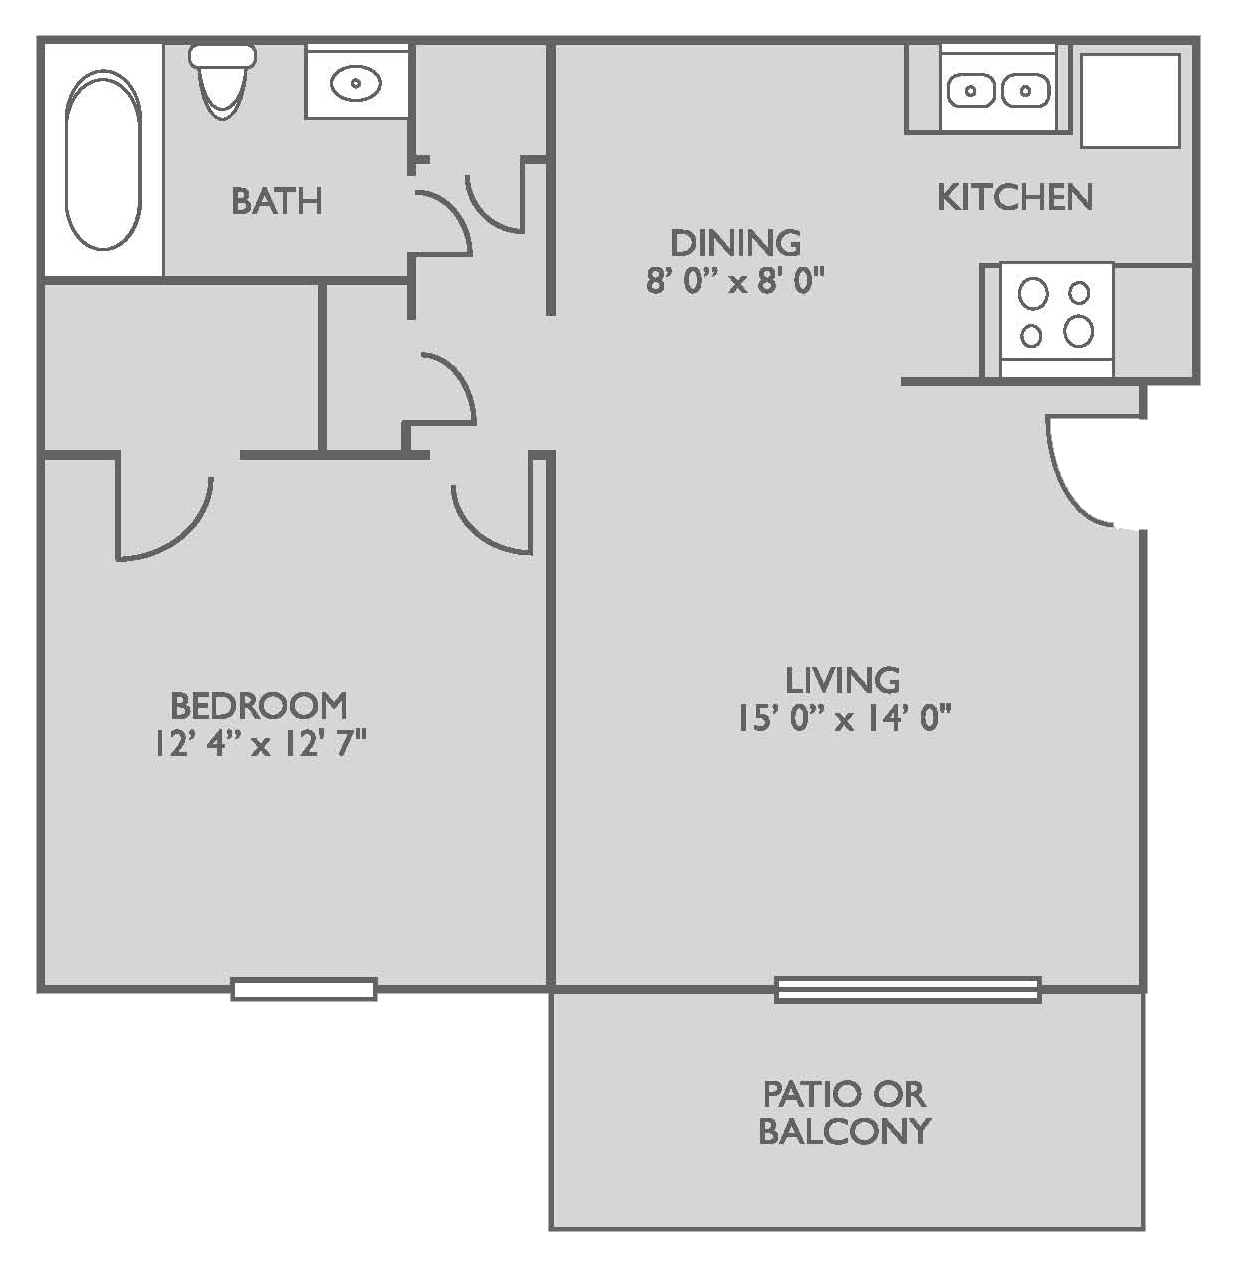 Floor Plans Of The Views On Pelham Apartments In